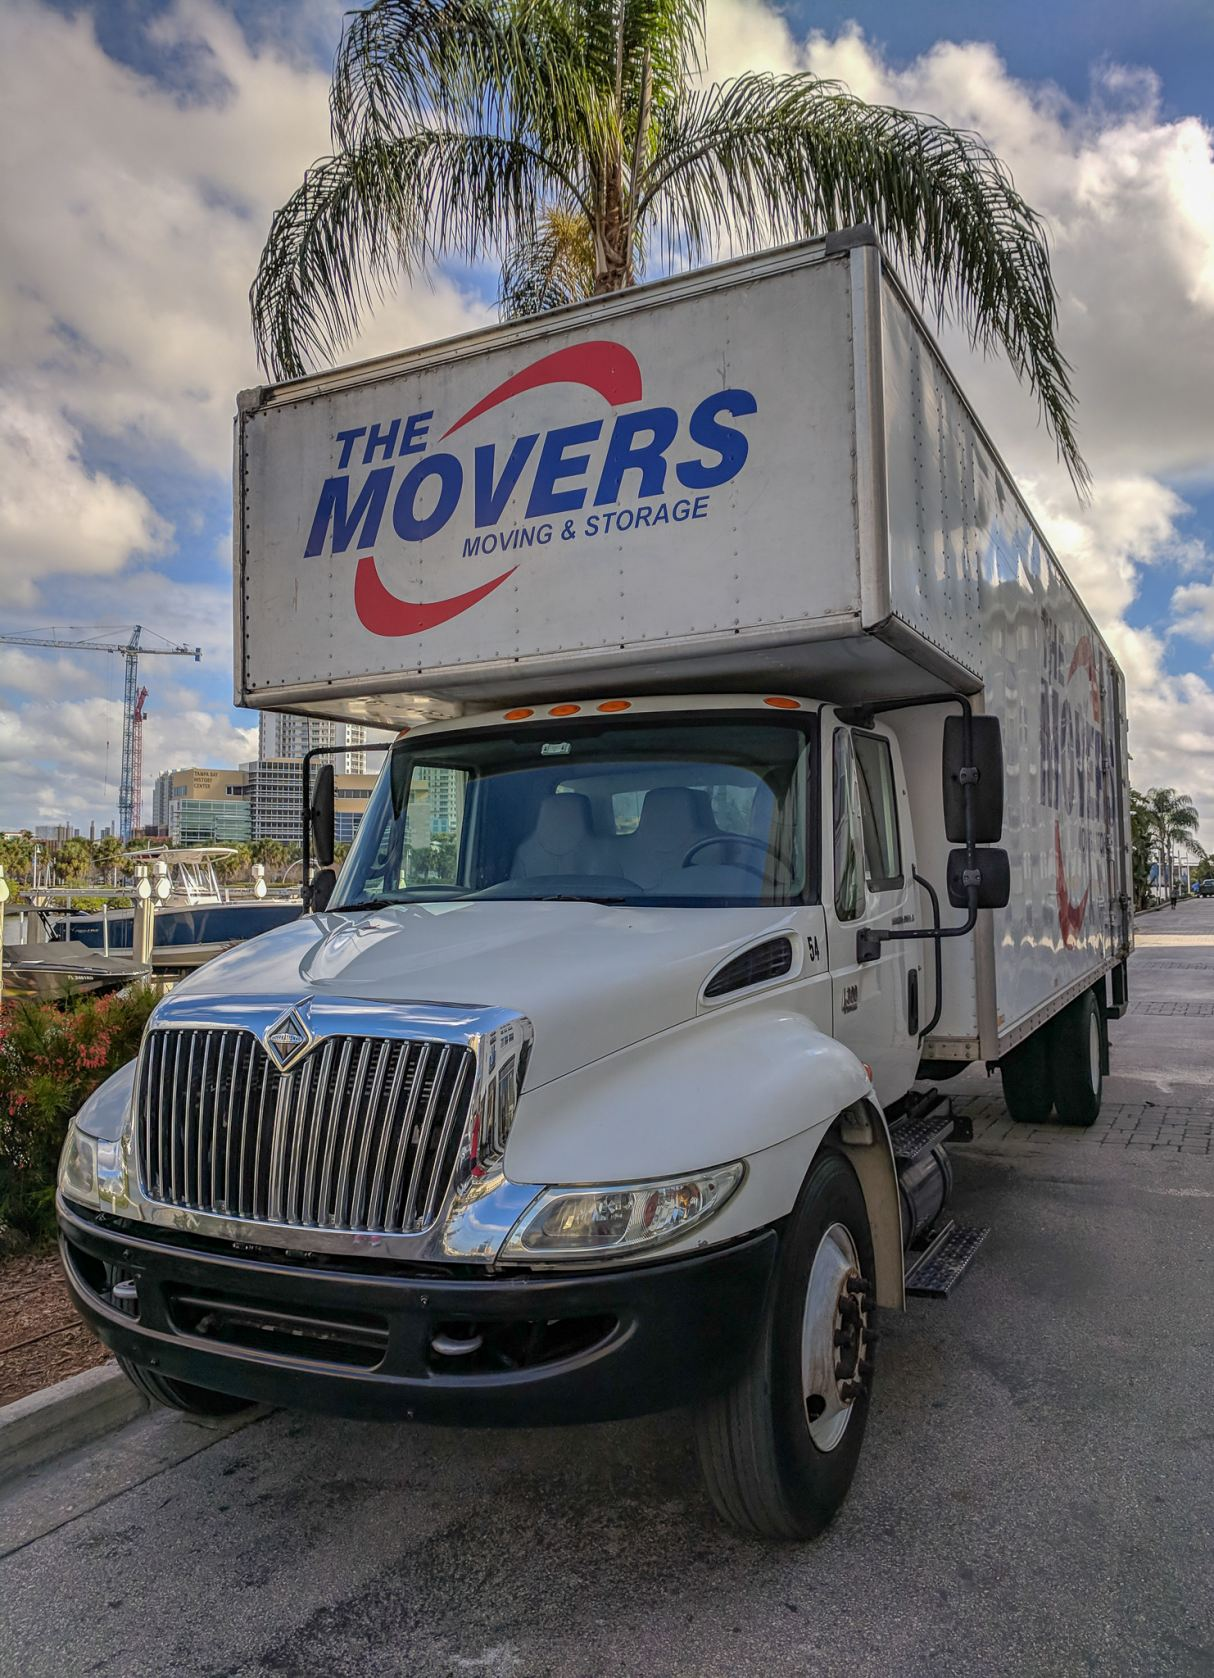 The Movers Moving & Storage Gears Up For Summer Season